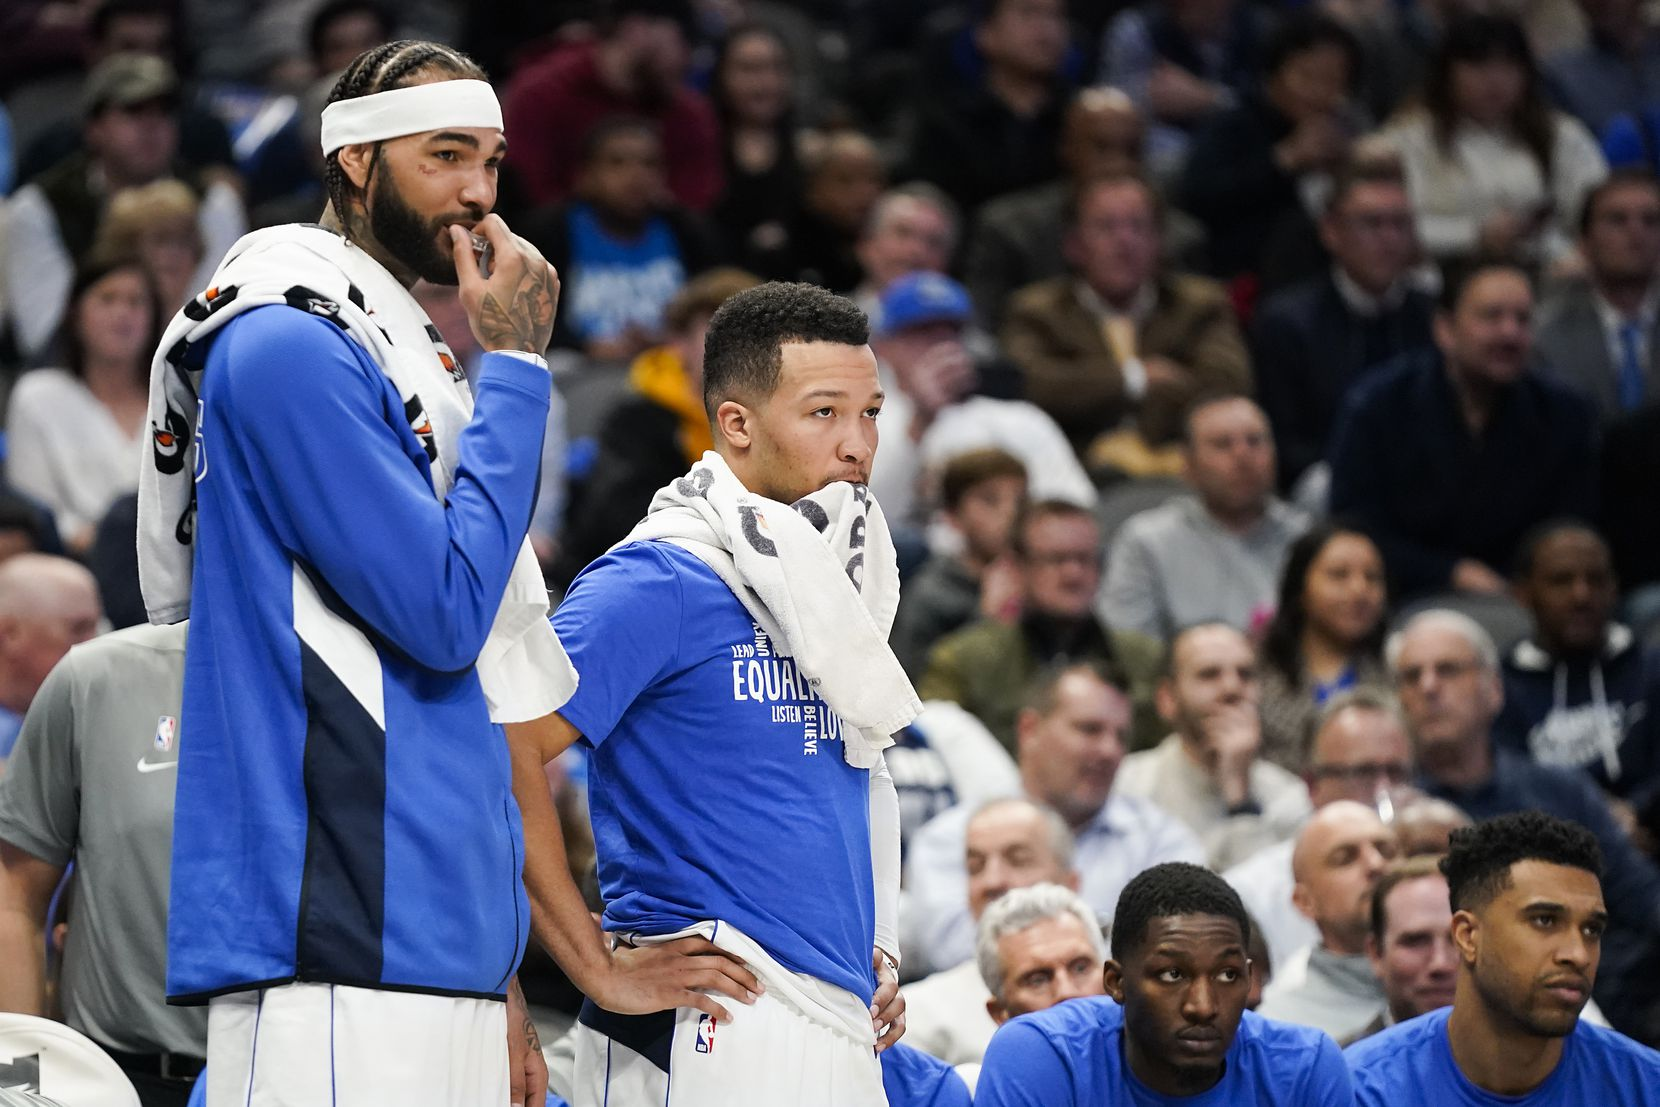 Dallas Mavericks center Willie Cauley-Stein (left) and guard Jalen Brunson watch from the bench during the second half of an NBA basketball game against the Memphis Grizzlies at American Airlines Center on Wednesday, Feb. 5, 2020, in Dallas.